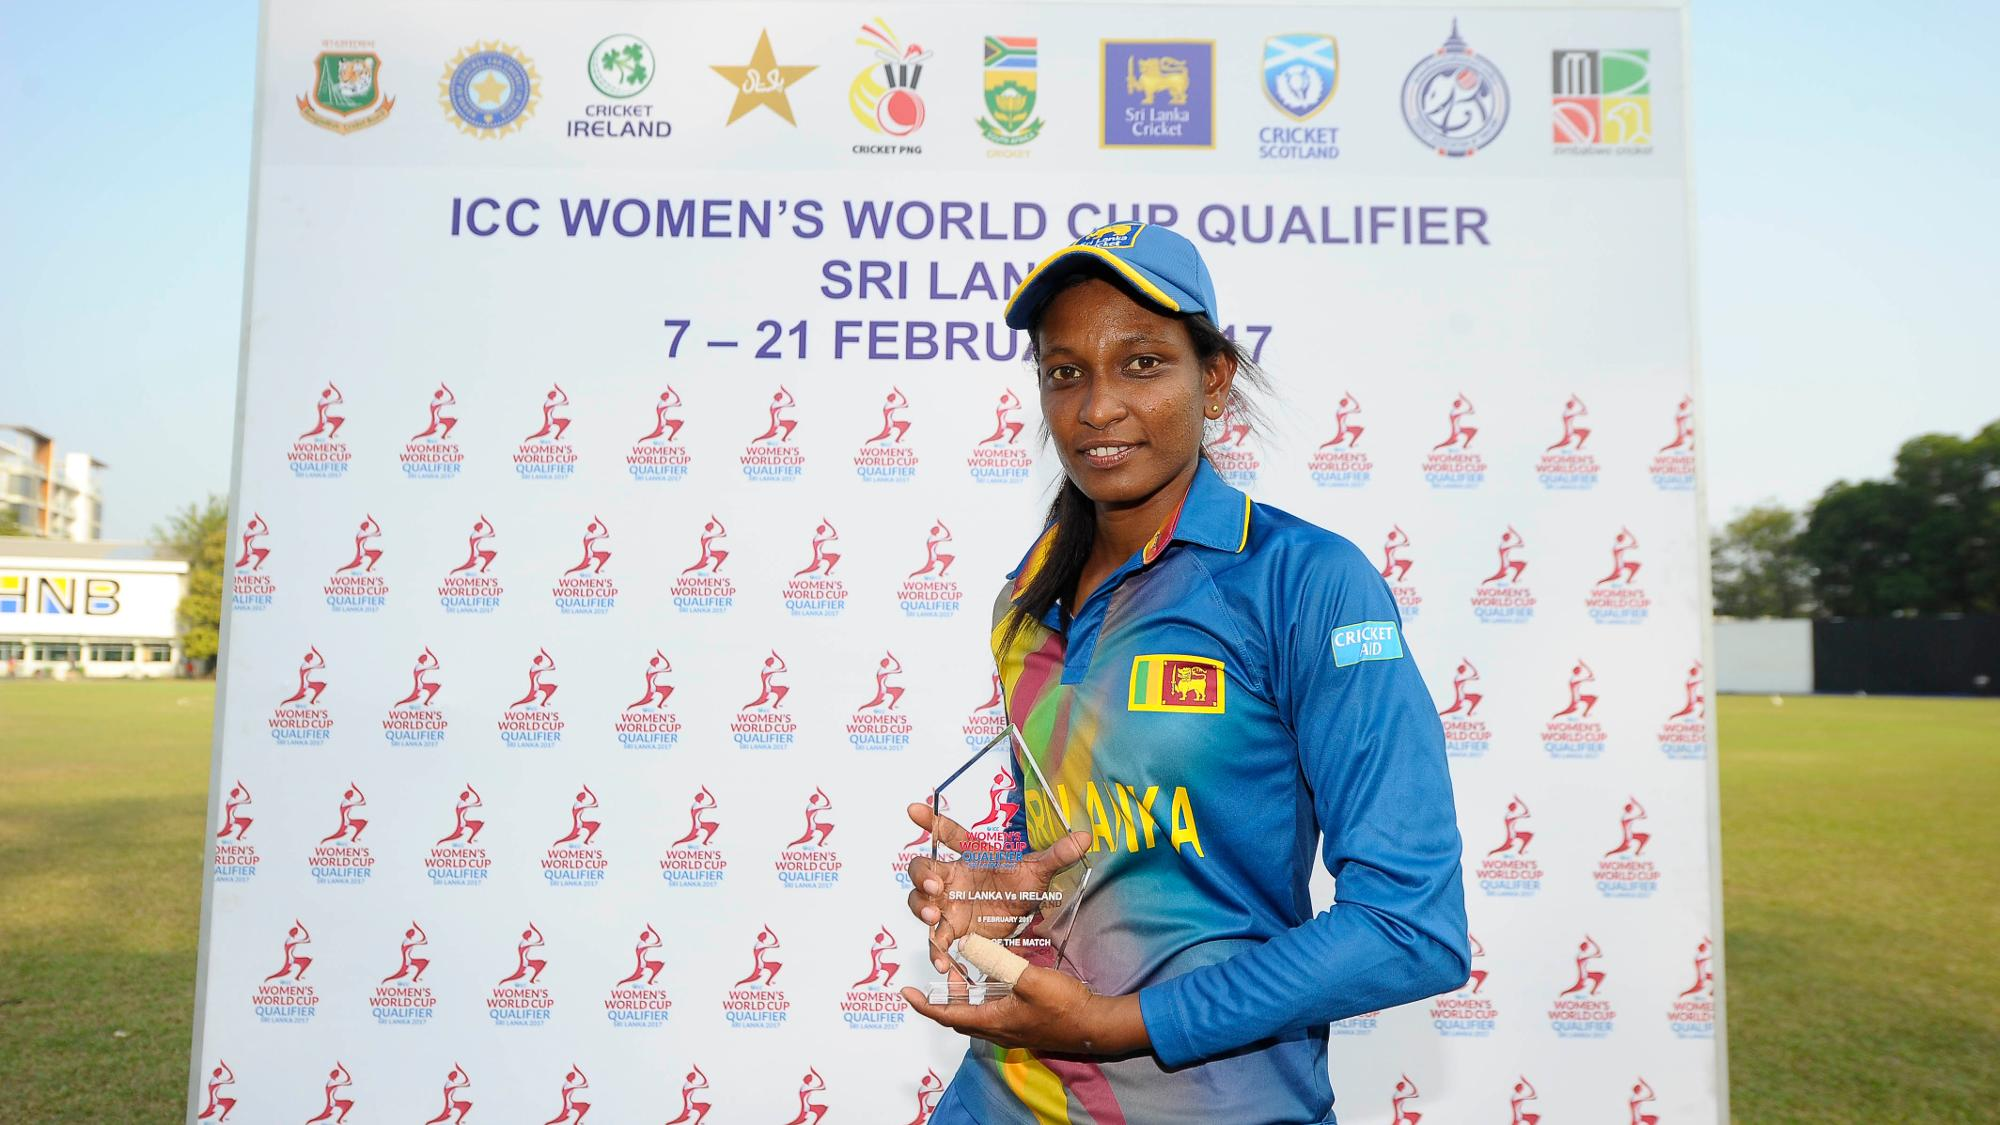 World Cup Qualifiers 2017 Priyadarshani Fernando Picked Up The Man Of Match Award For Her Figures Three